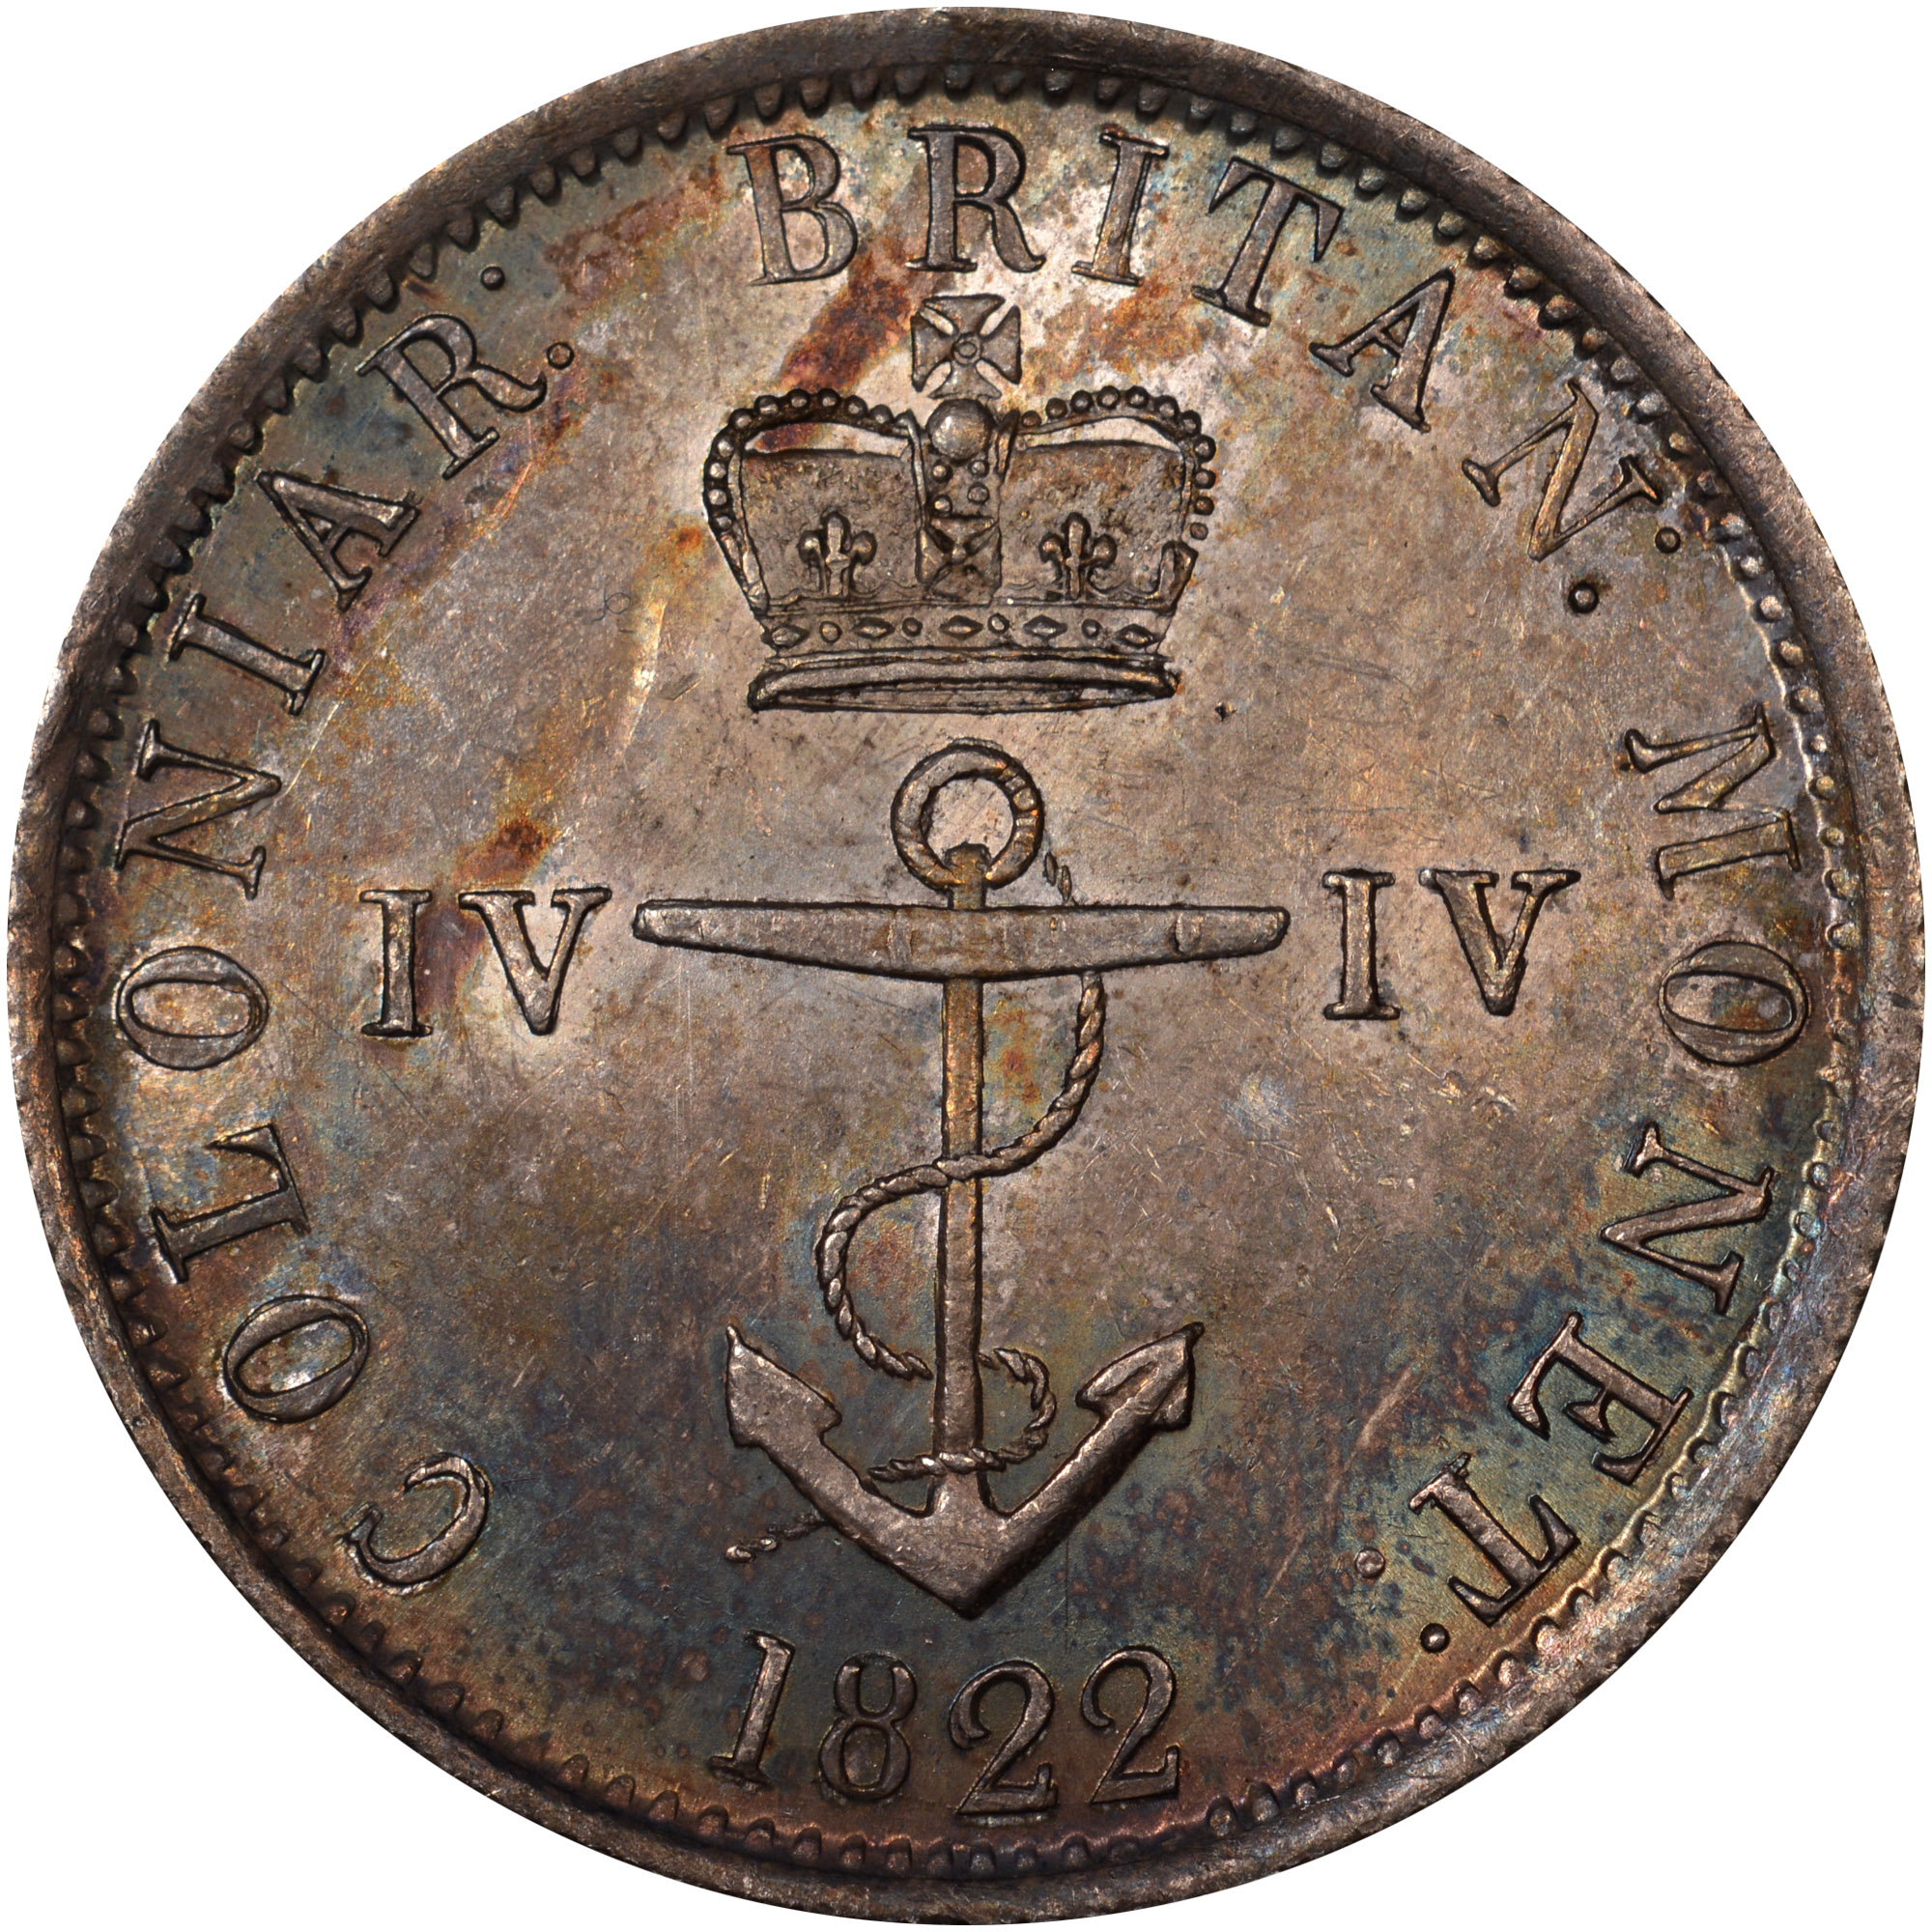 1820-1822/1 British West Indies 1/4 Dollar obverse